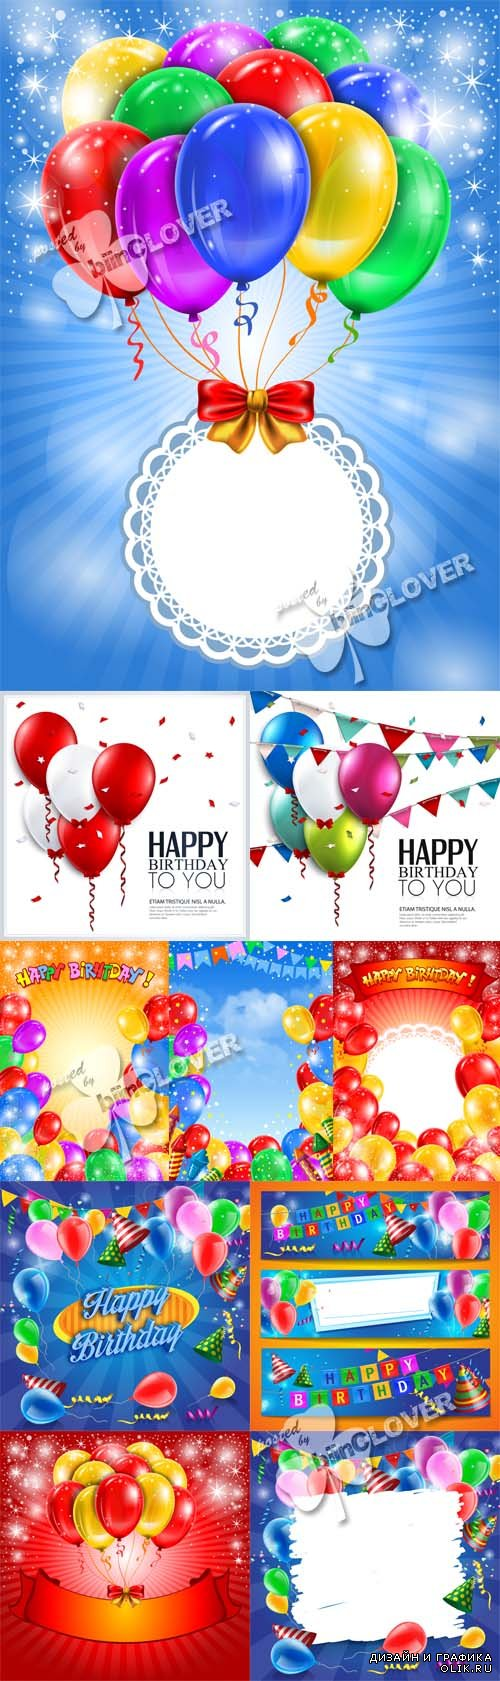 Holiday or Happy birthday cards with colorful balloons 0598